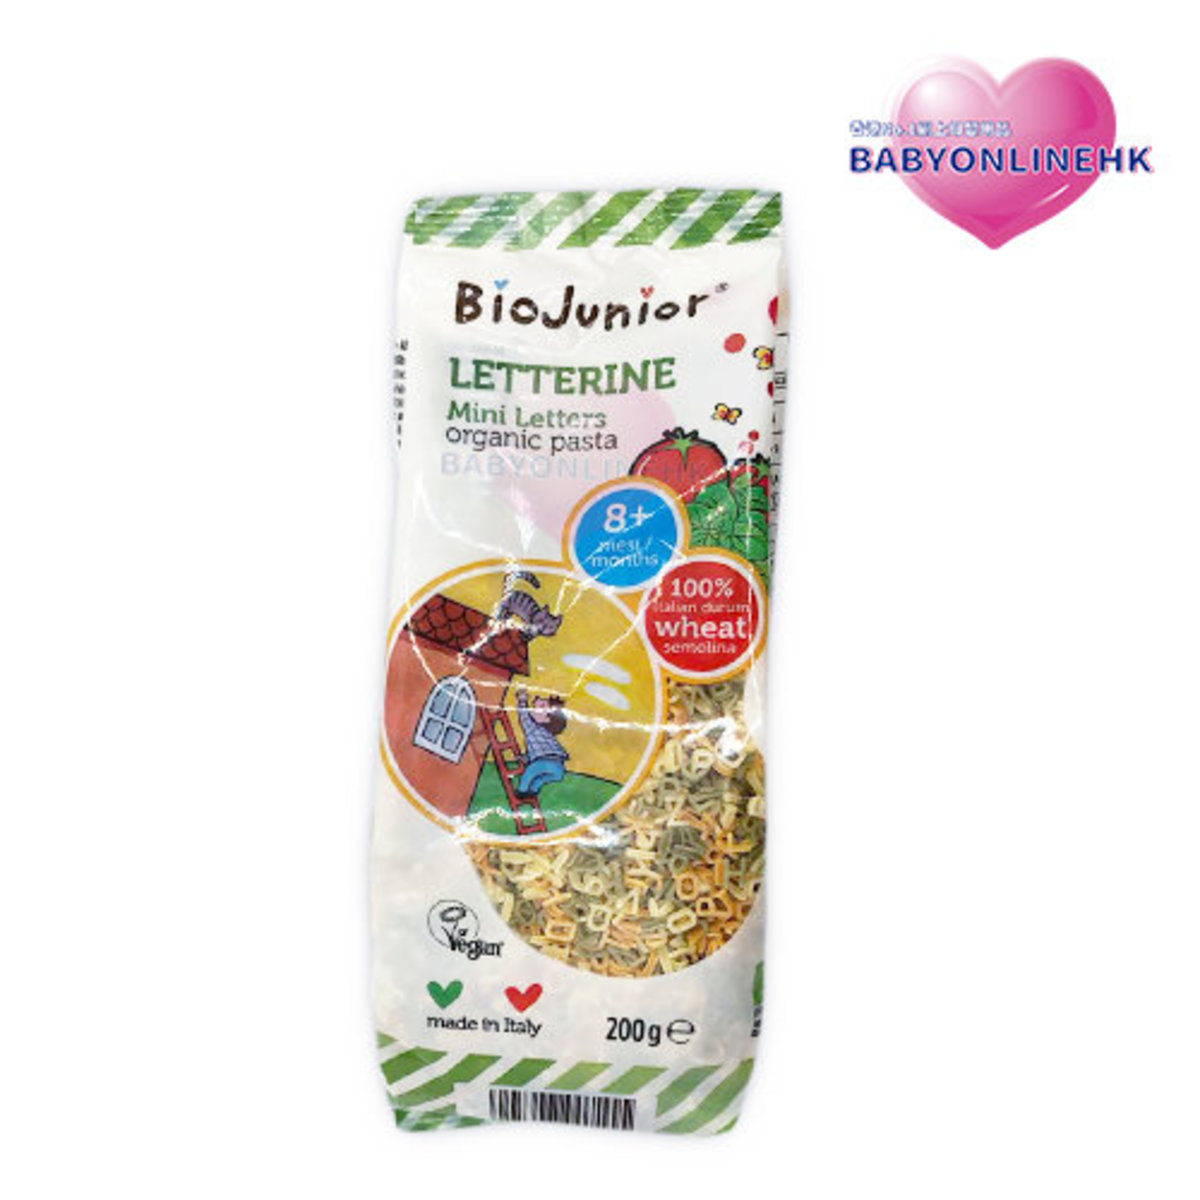 ORGANIC baby Pasta - vegetable small letters pasta / spaghetti 8+ 200g (Parallel Imports Product)